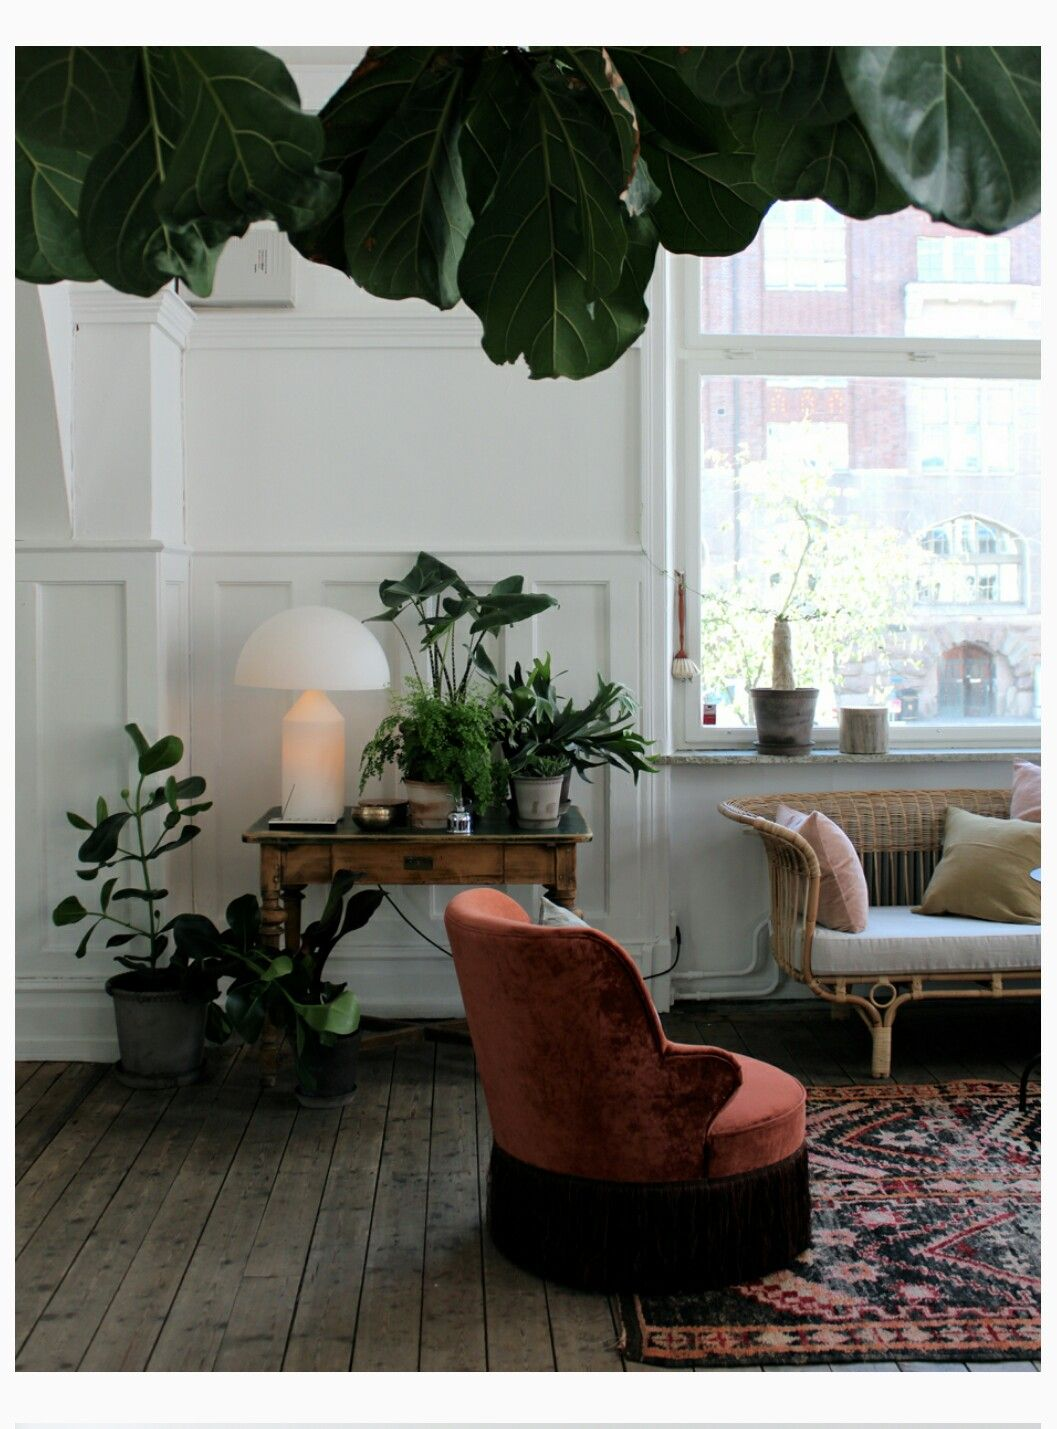 Big Plants For Living Room Pin By Matilda Sjöö On Inredning Pinterest Hogar